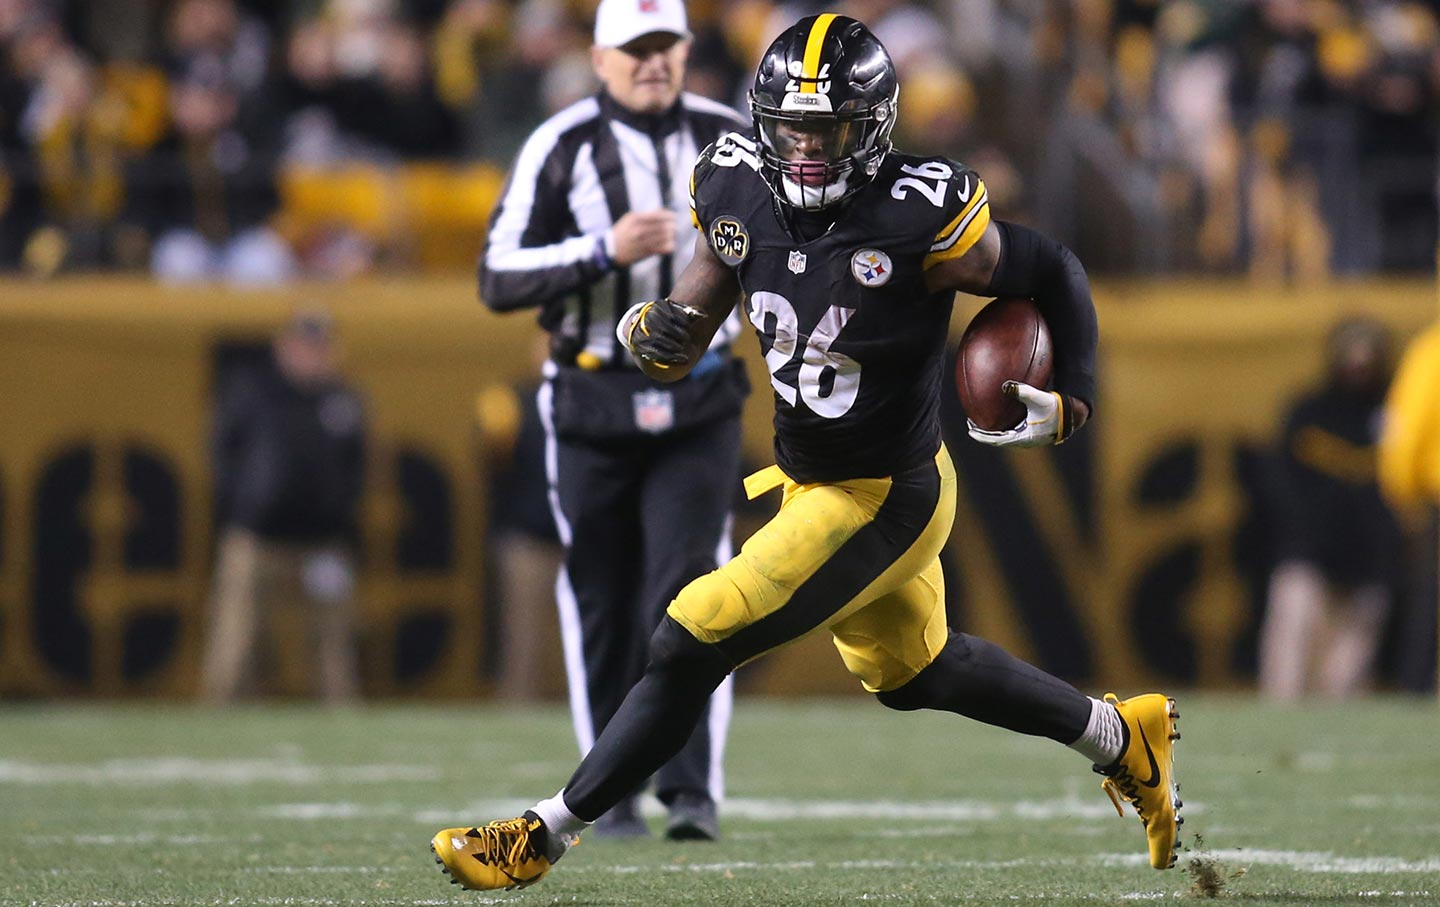 Pittsburgh Steelers Running Back Leveon Bell Rushes The Ball Against The Green Bay Packers In Pittsburgh On November 26 2017